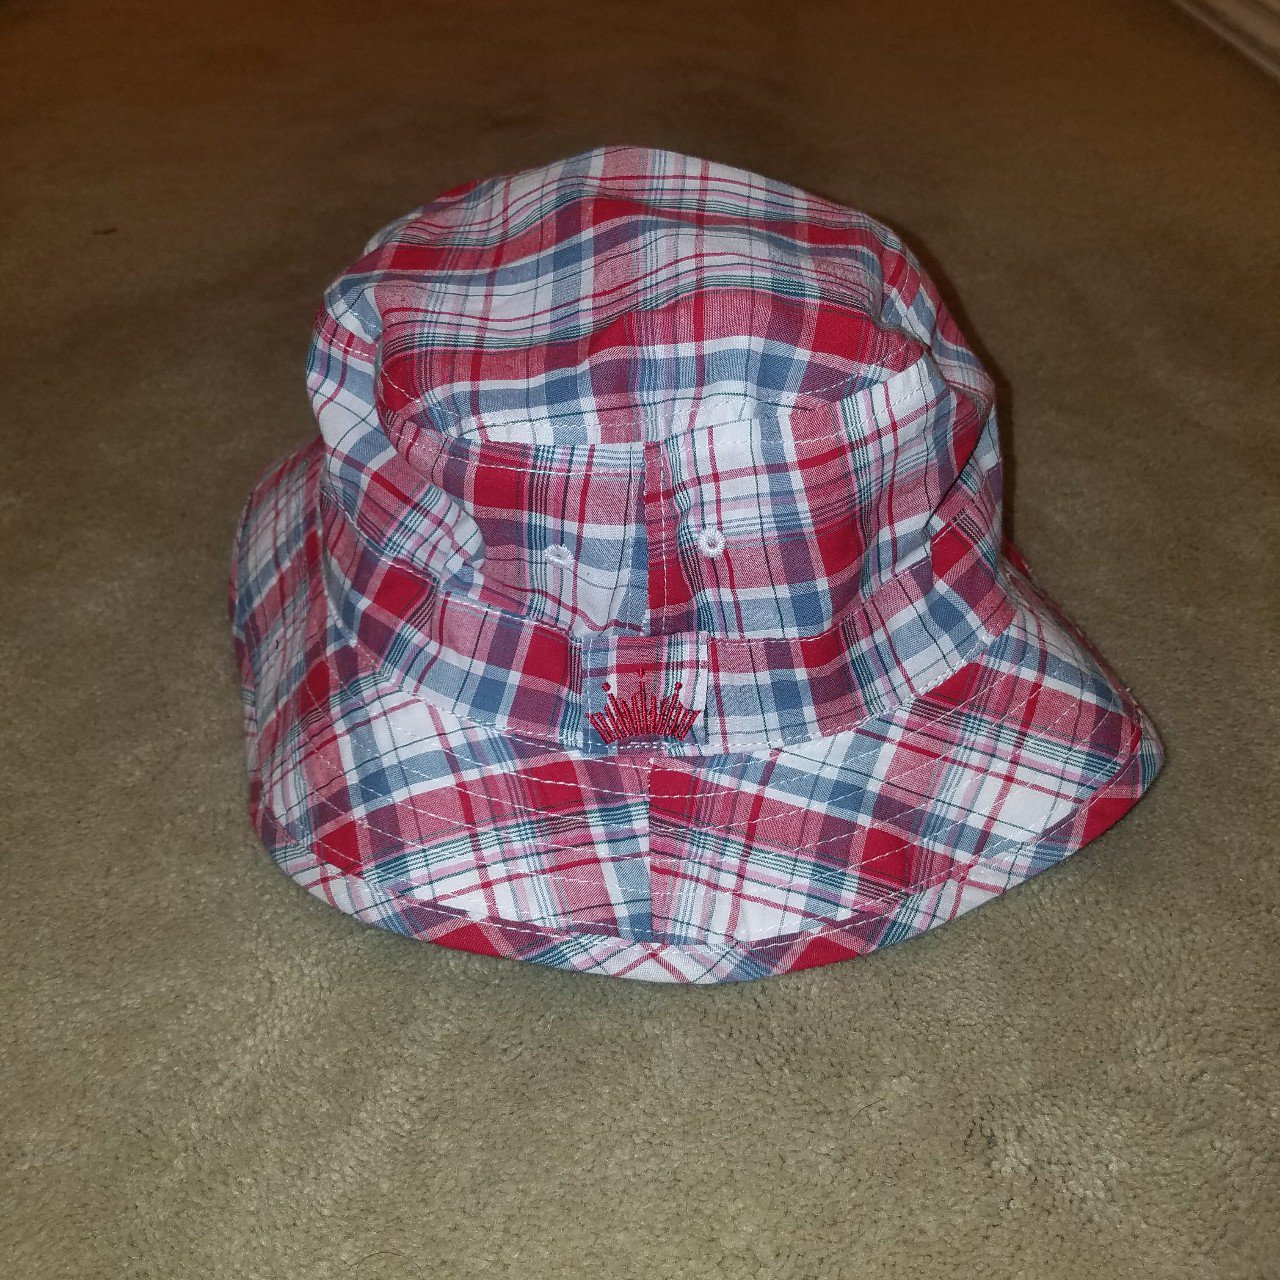 Reversible Budweiser bucket hat one size fits all - Depop 2e3c865fa7b